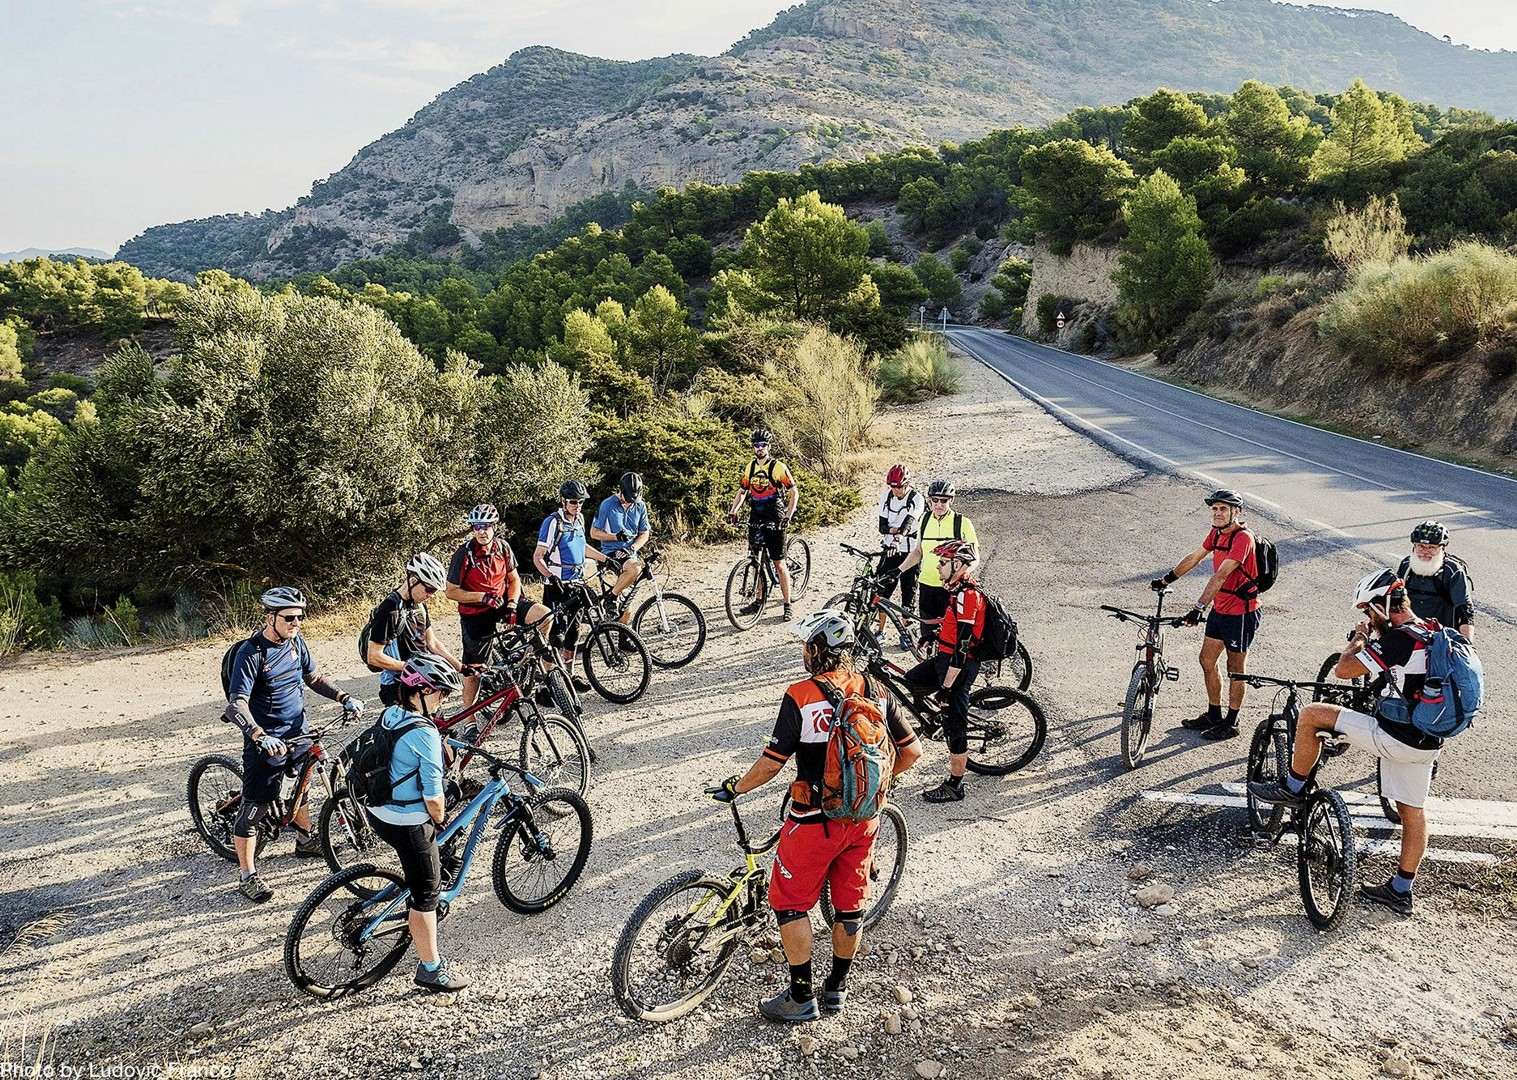 mountain-biking-guided-tour-andalucia-spain-culture-explore.jpg - Spain - Awesome Andalucia - Guided Mountain Bike Holiday - Mountain Biking